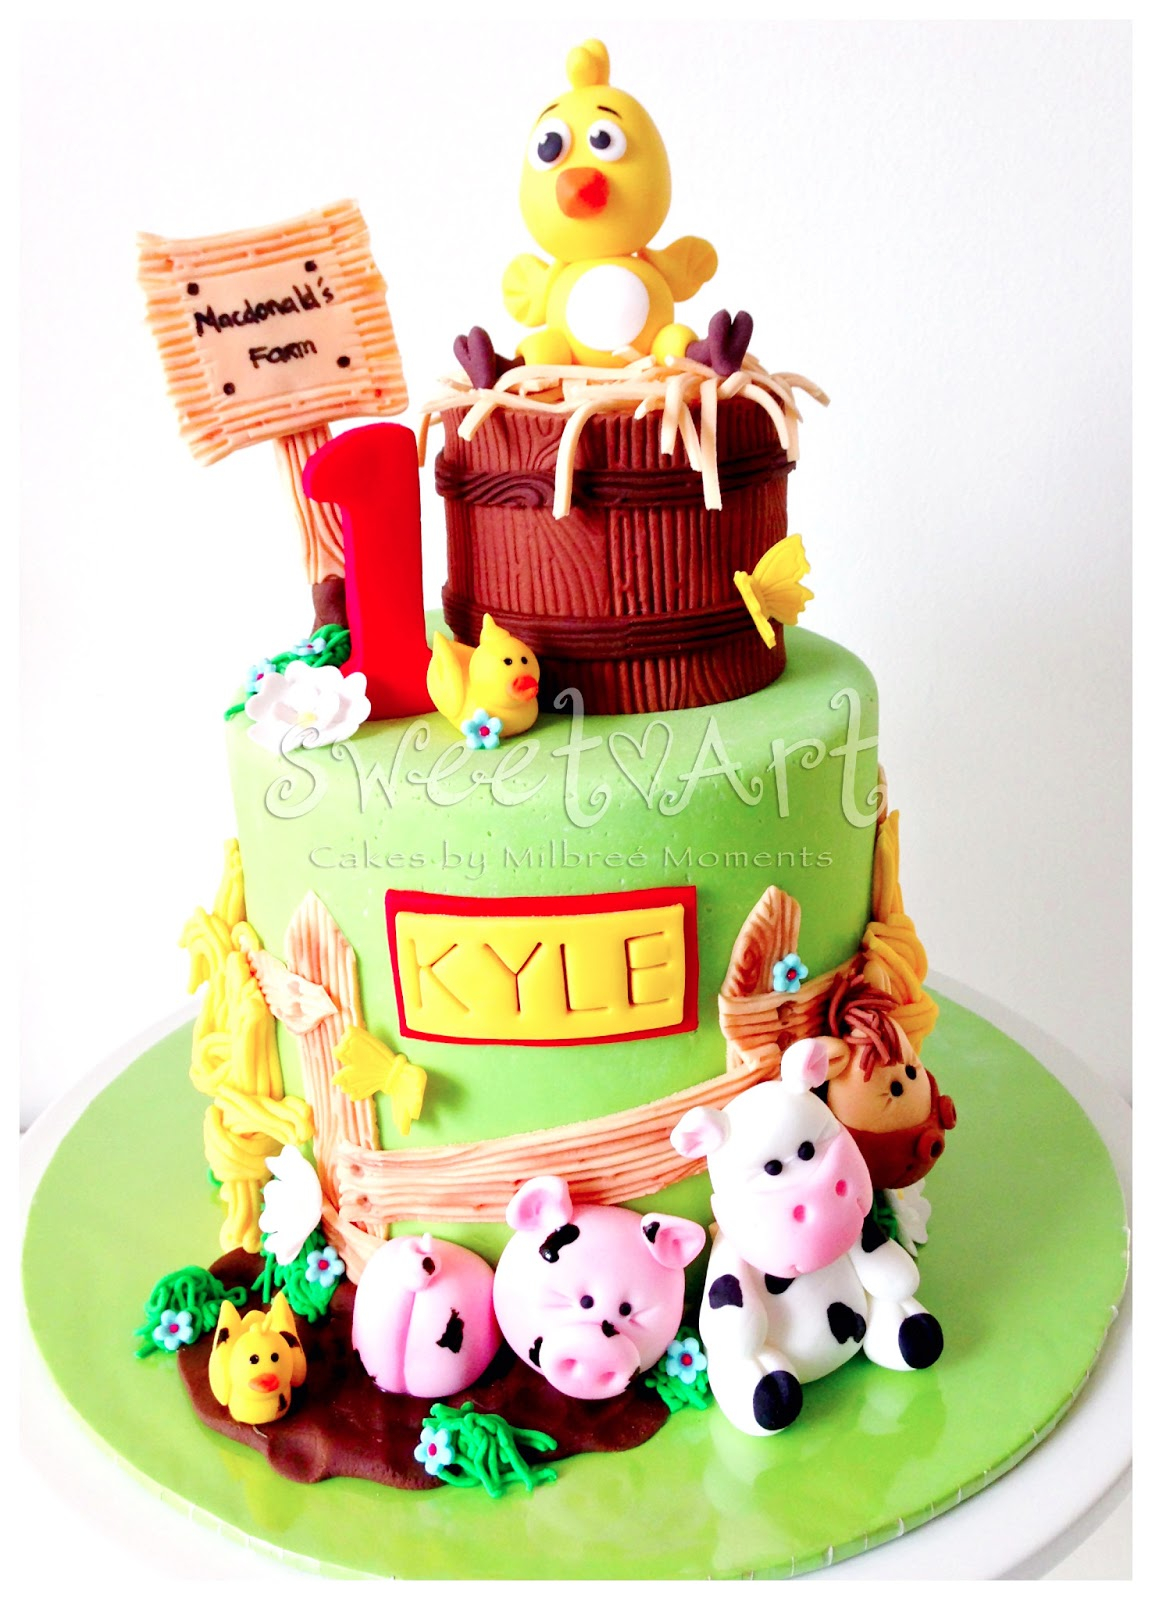 Farm Birthday Cake Sweet Art Cakes Milbre Moments Kyles Farm Animals 1st Birthday